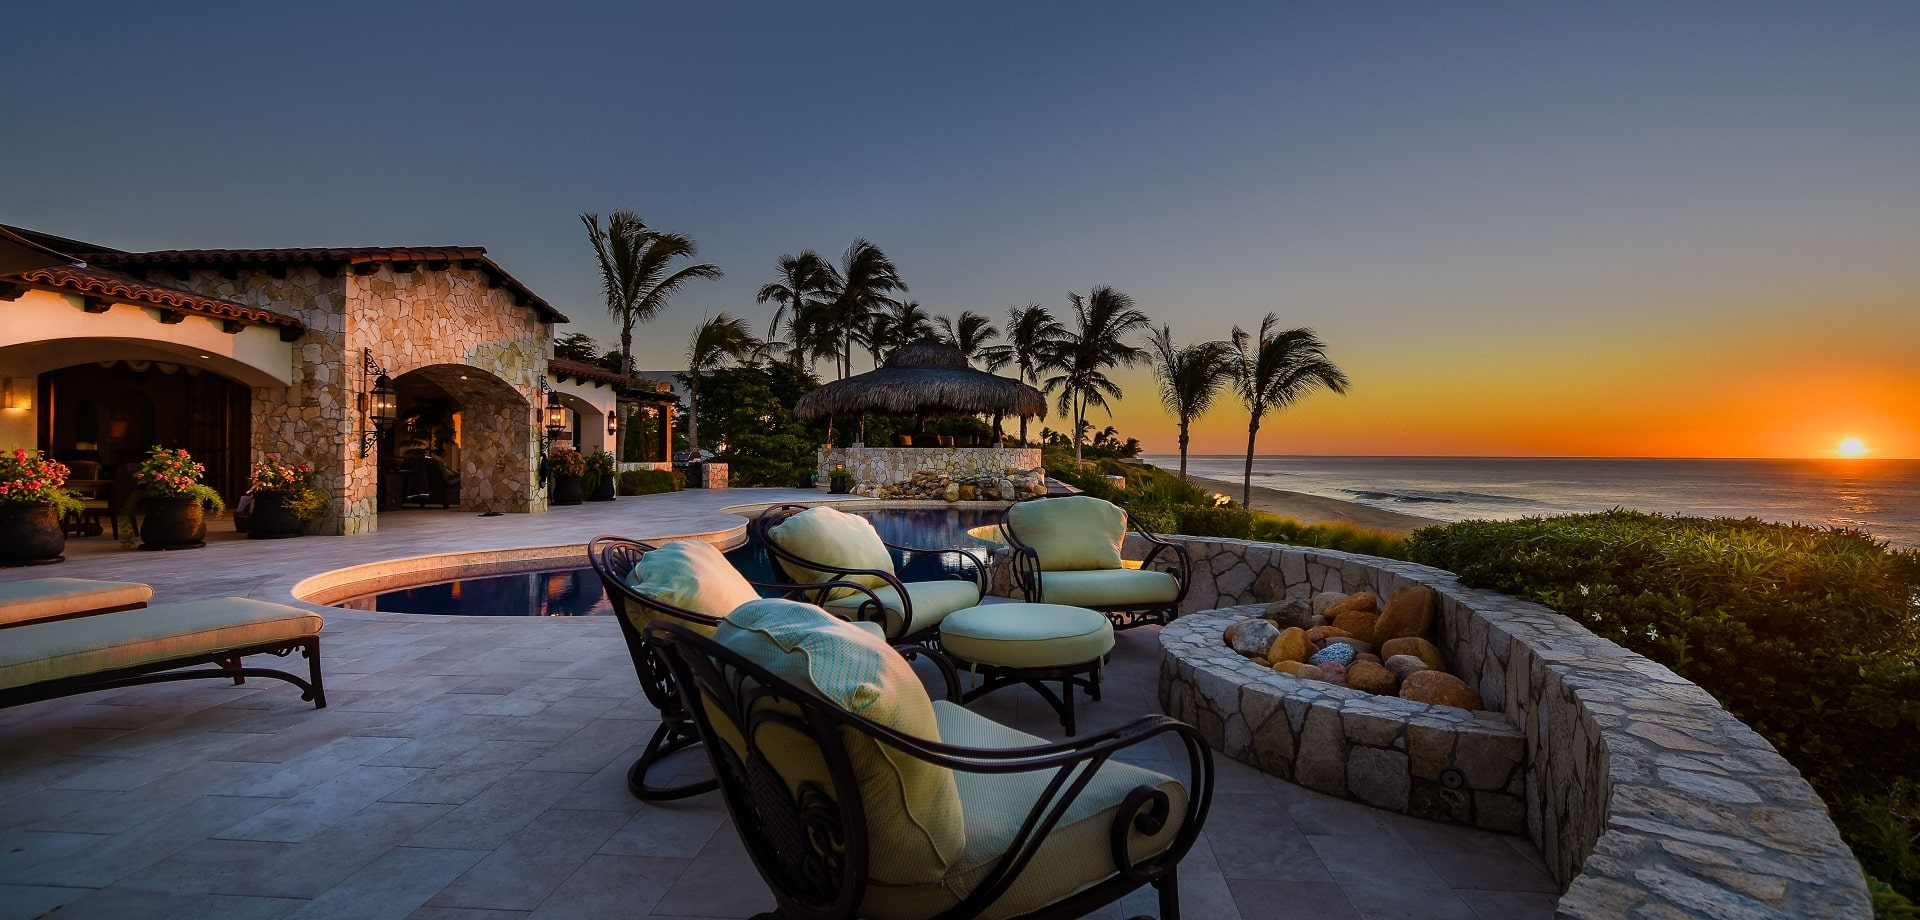 cabo beach realty, jeff schmidt